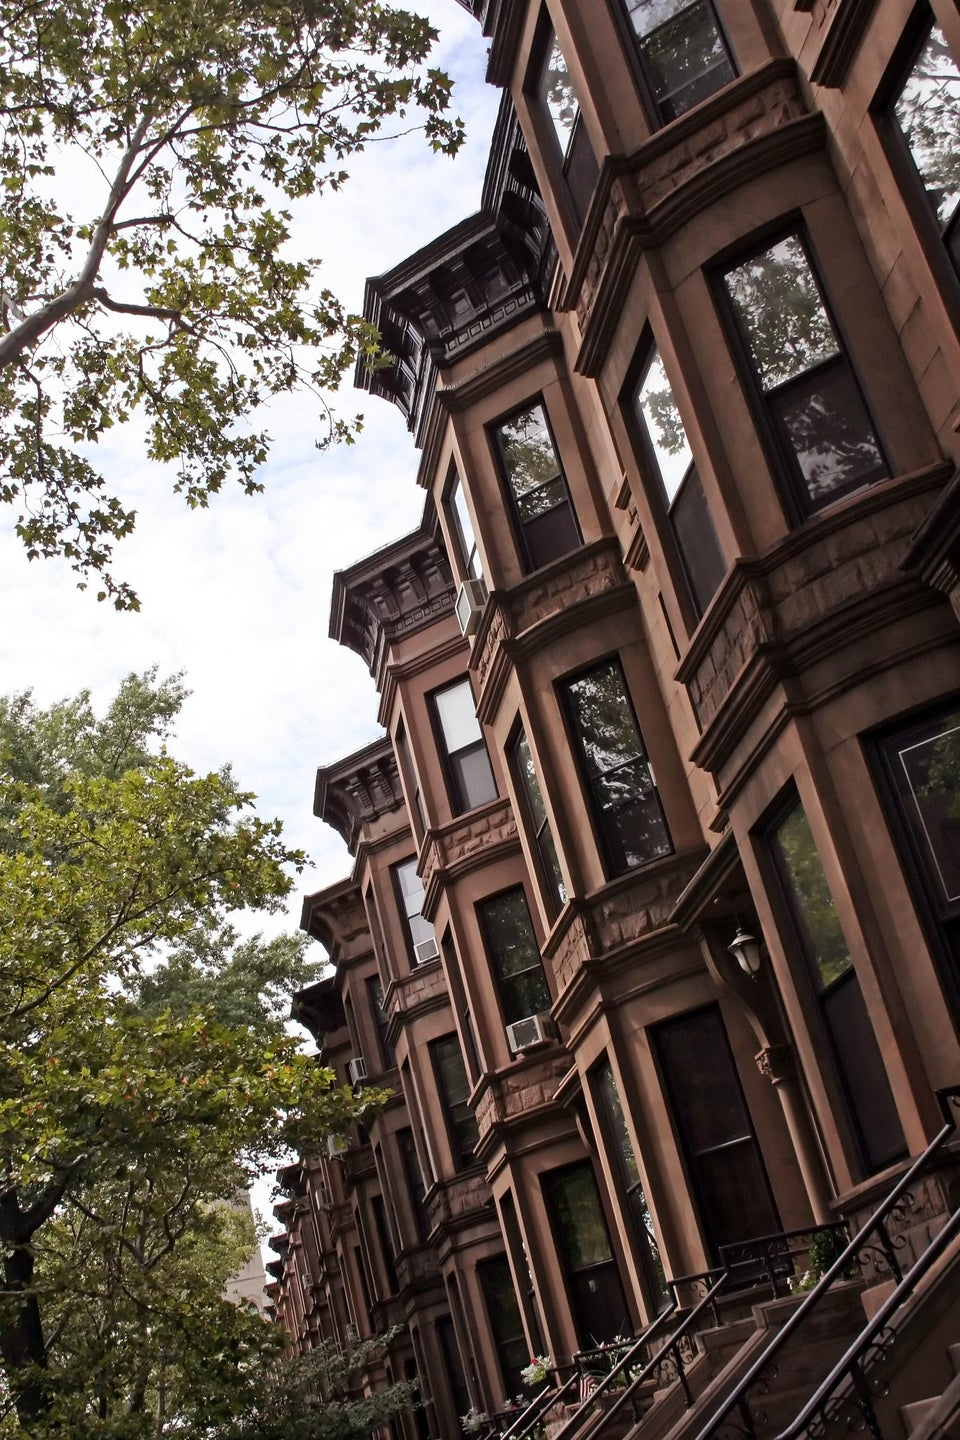 ESSENCE Poll: Has Gentrification Affected Your Neighborhood or Daily Life?